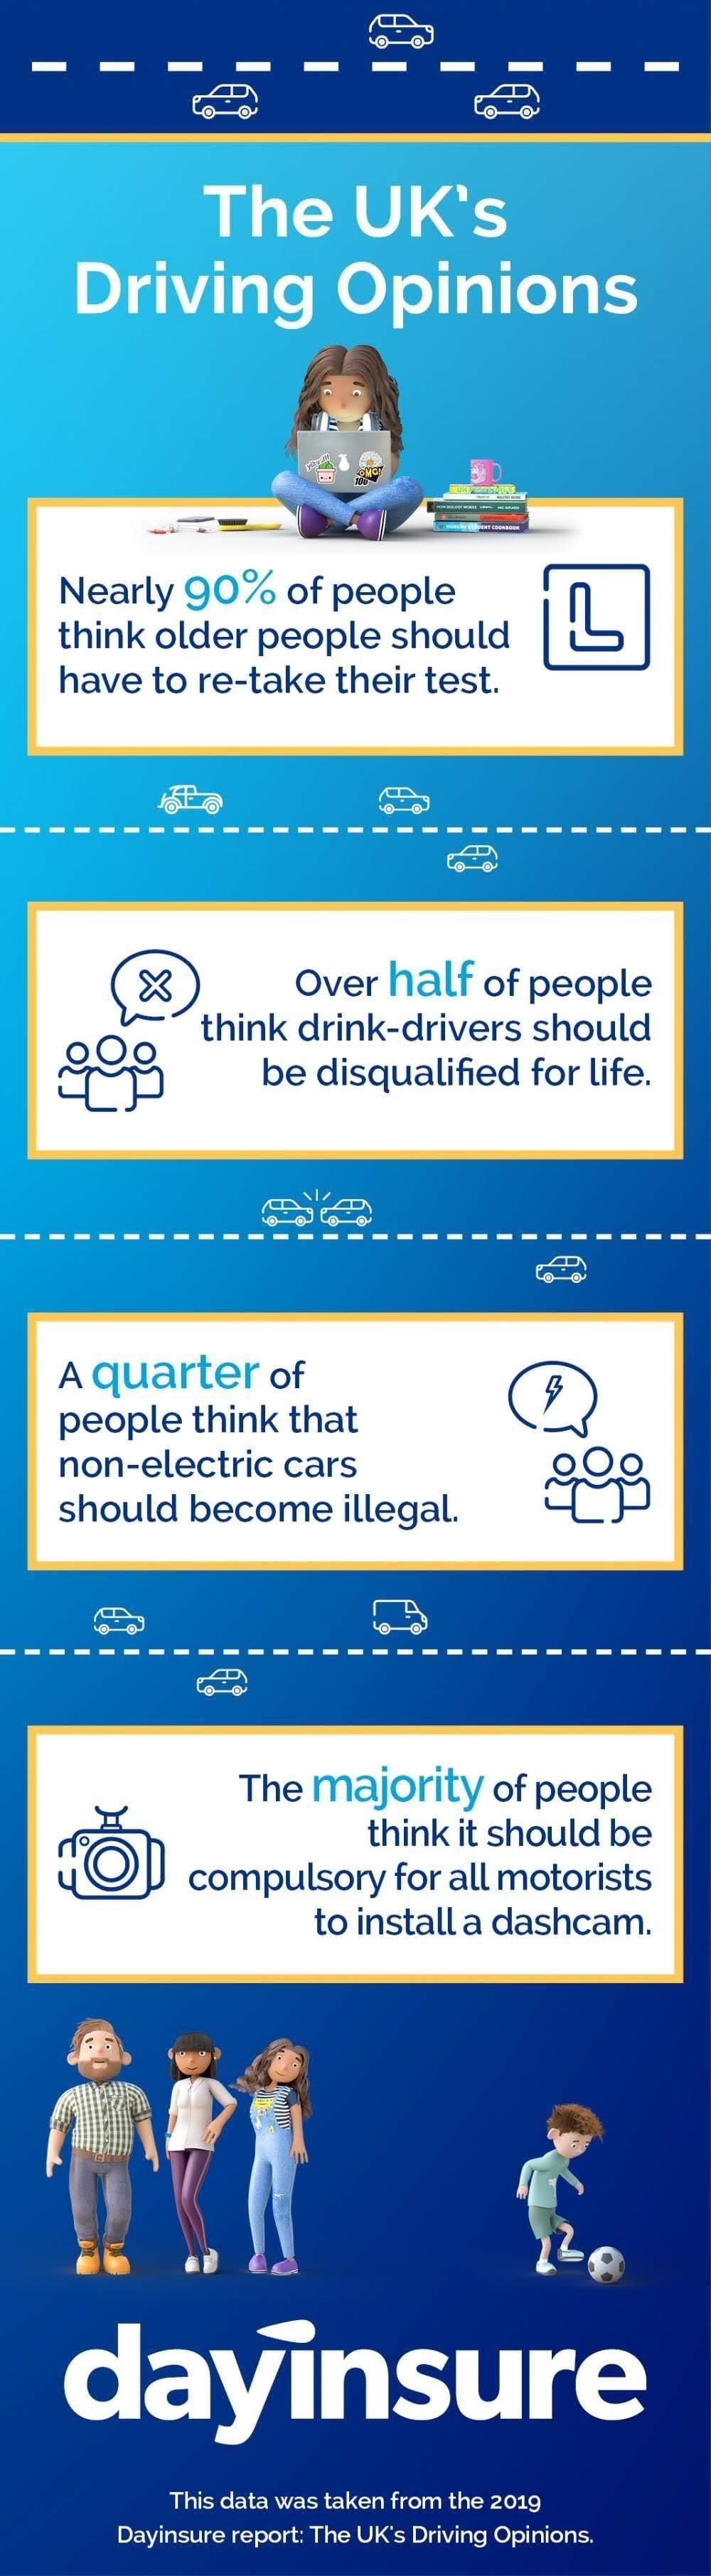 The UK's driving opinions #infographic